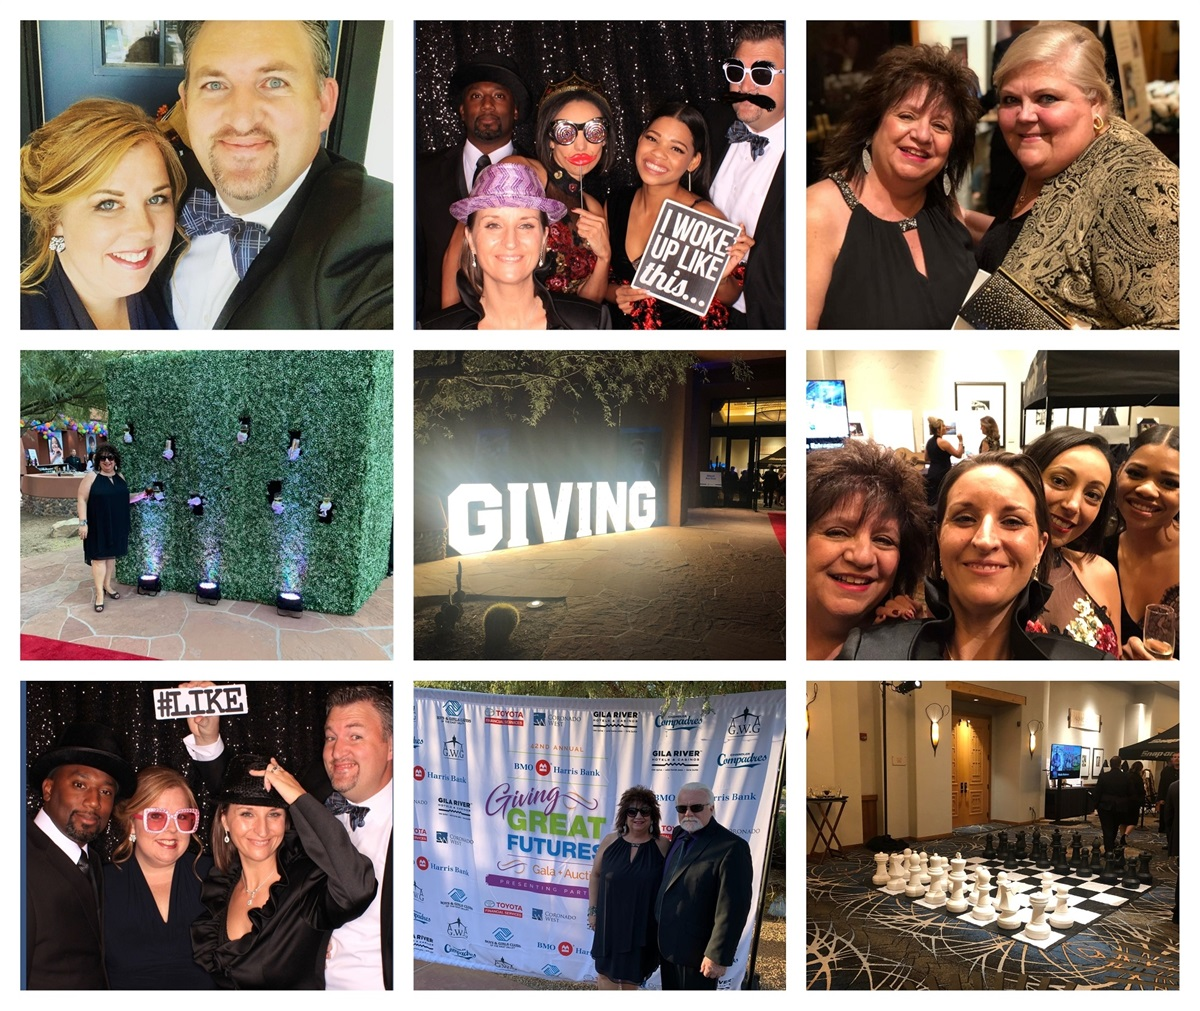 42nd Annual Giving Great Futures Gala and Auction